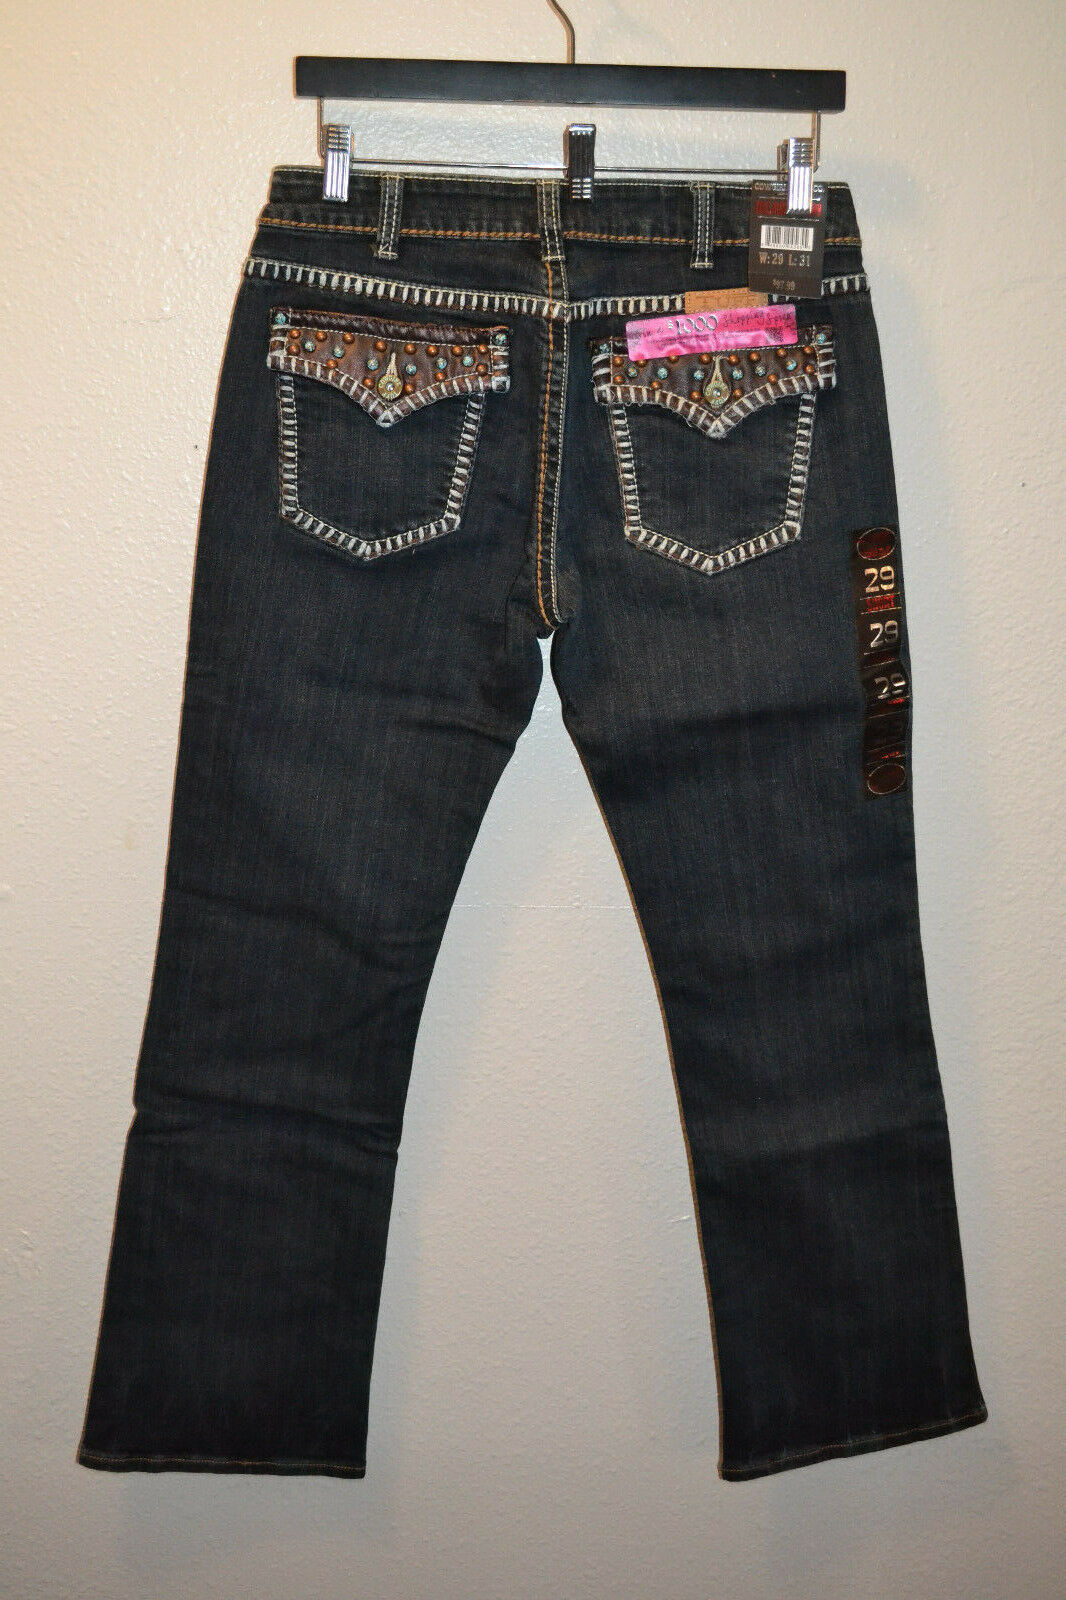 Cowgirl Tuff Jeans 29x31 Girls Night Out Brown Midrise Bootcut Dark Wash Western